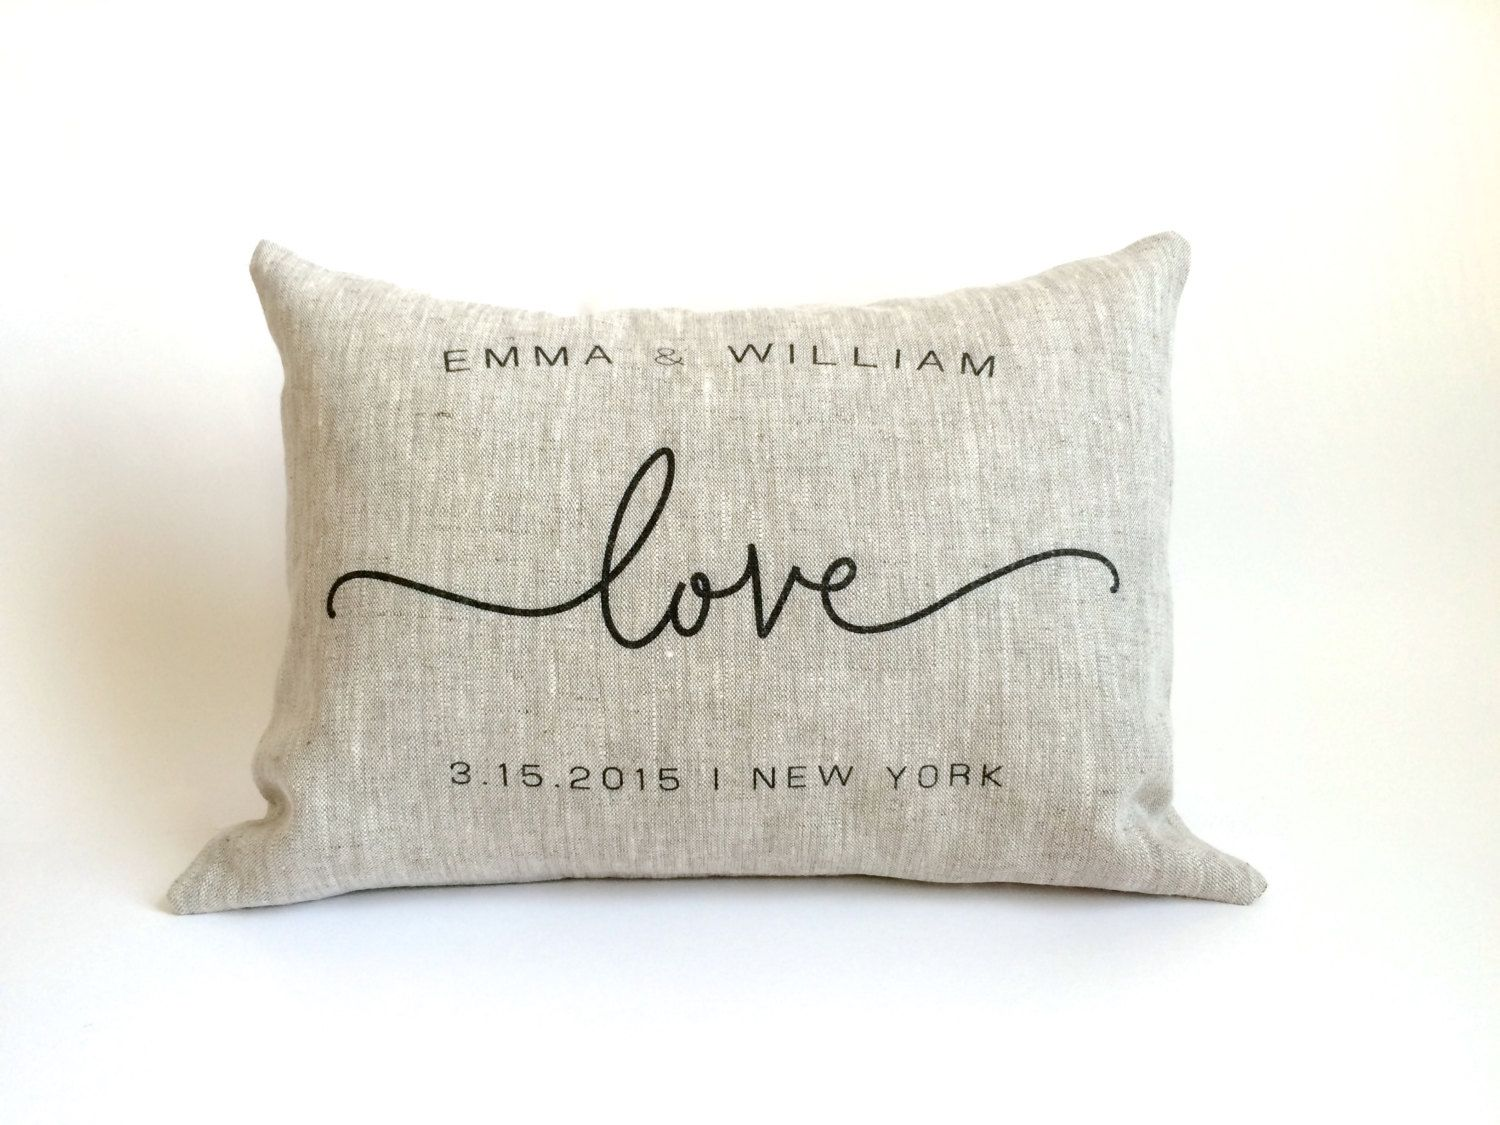 Pin by paulette bulloch on great gifts pinterest pillows